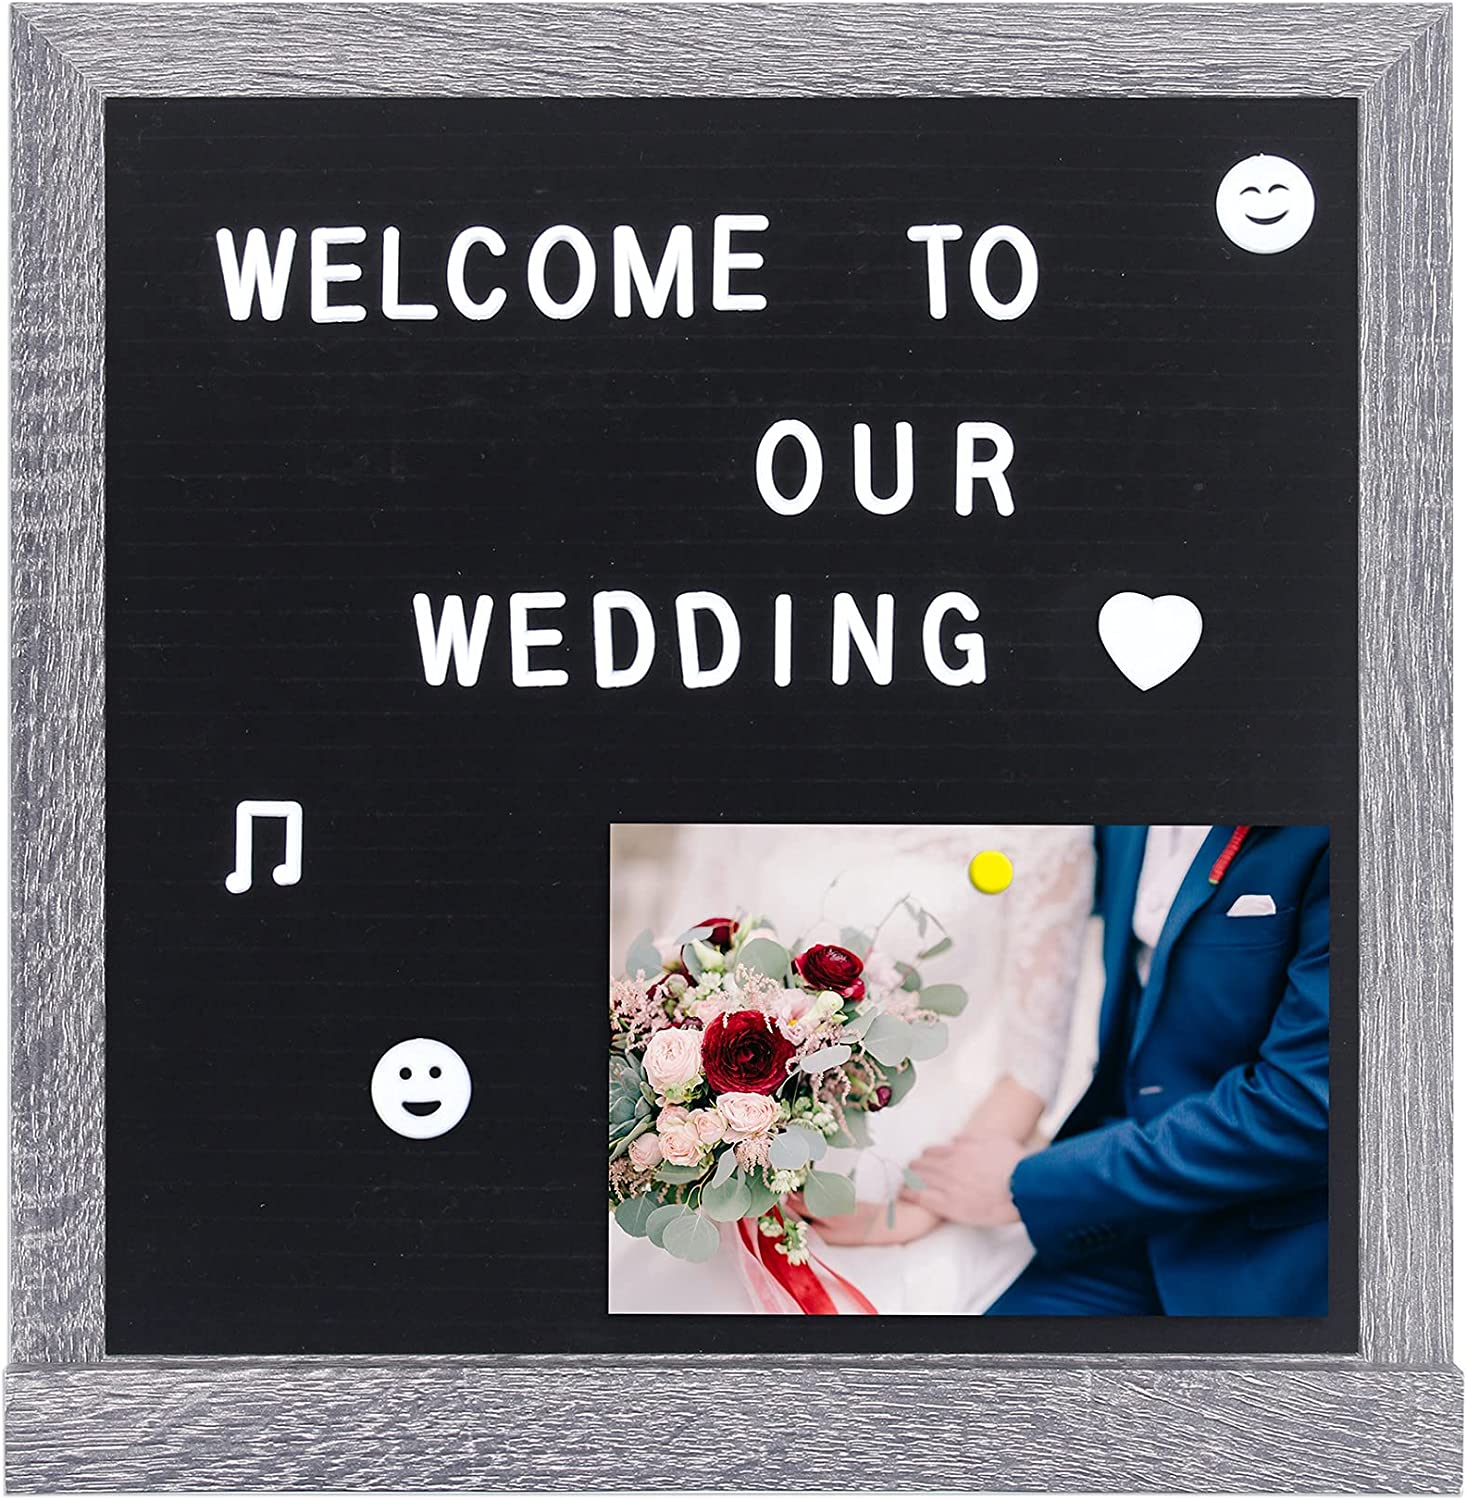 12×12 Inches Letter Board Limited Special Price with Frame Fe Vintage Max 51% OFF Stand USVANE